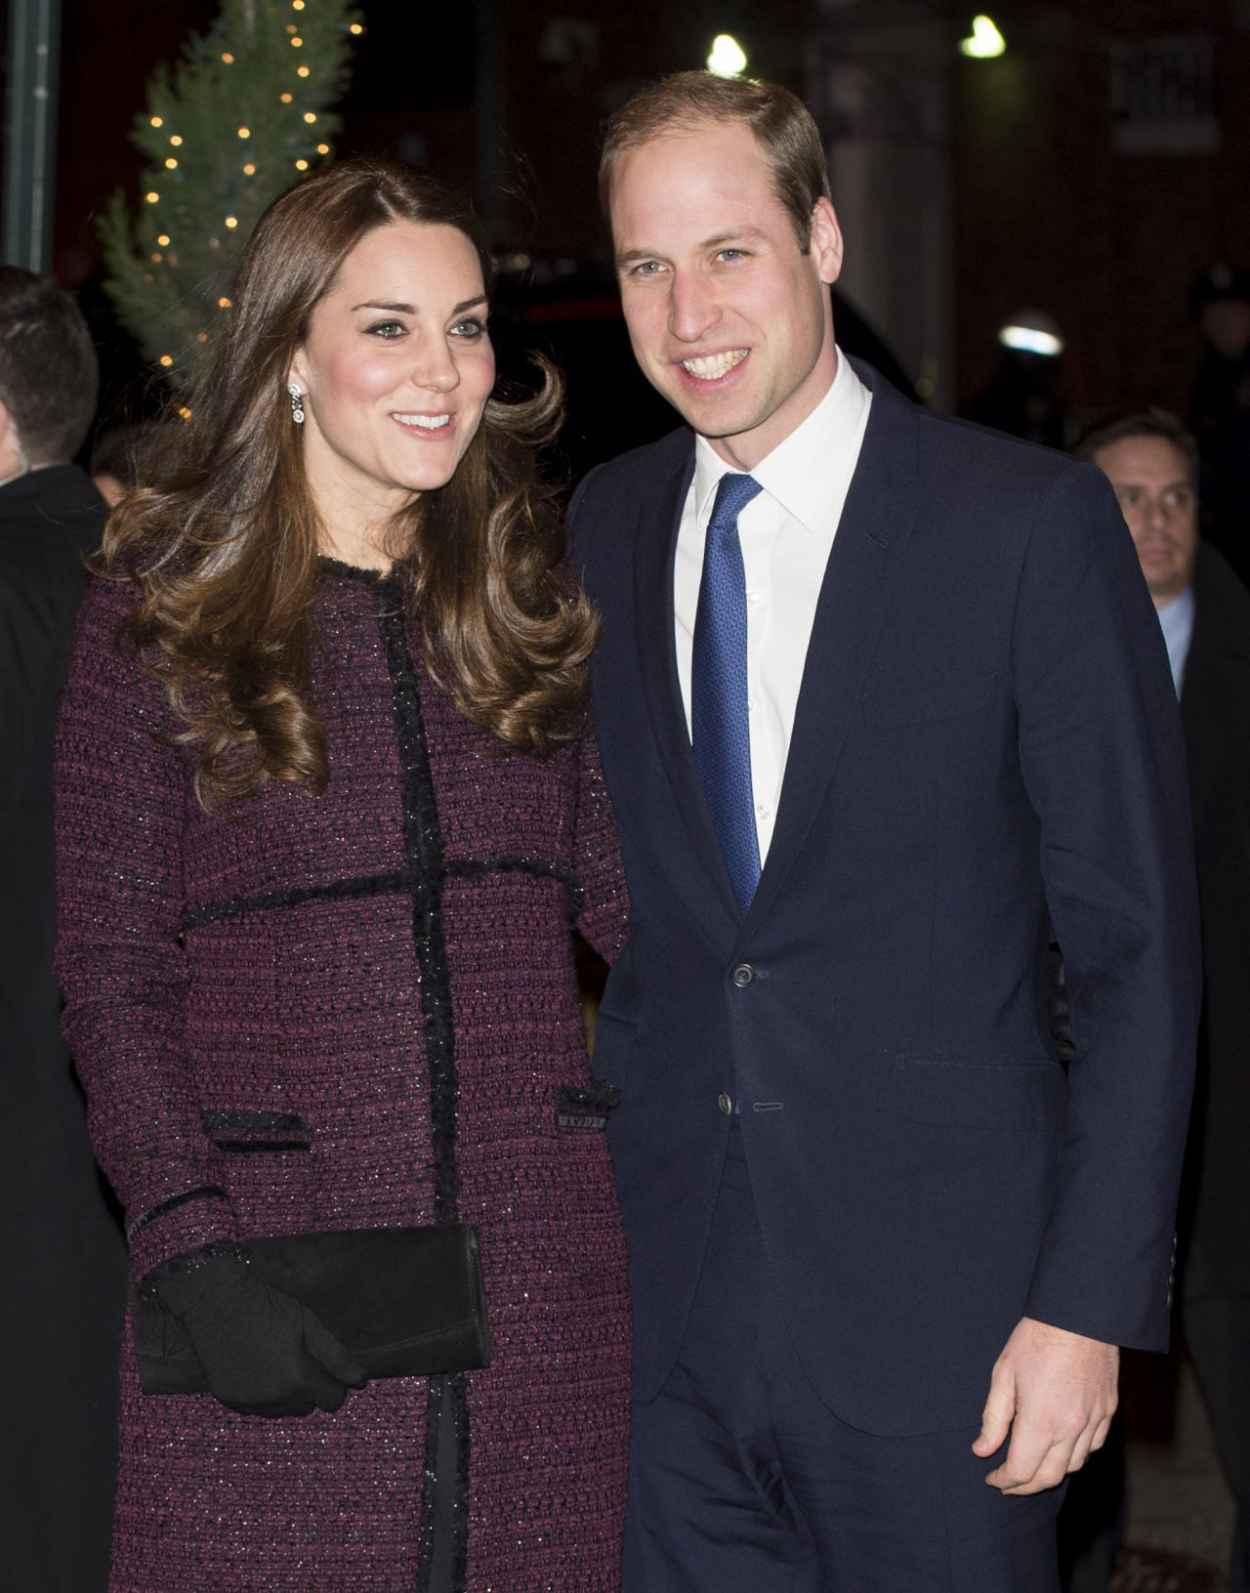 Kate Middleton (Duchess of Cambridge) and Prince William at The Carlyle Hotel in New York City - December 2015-1